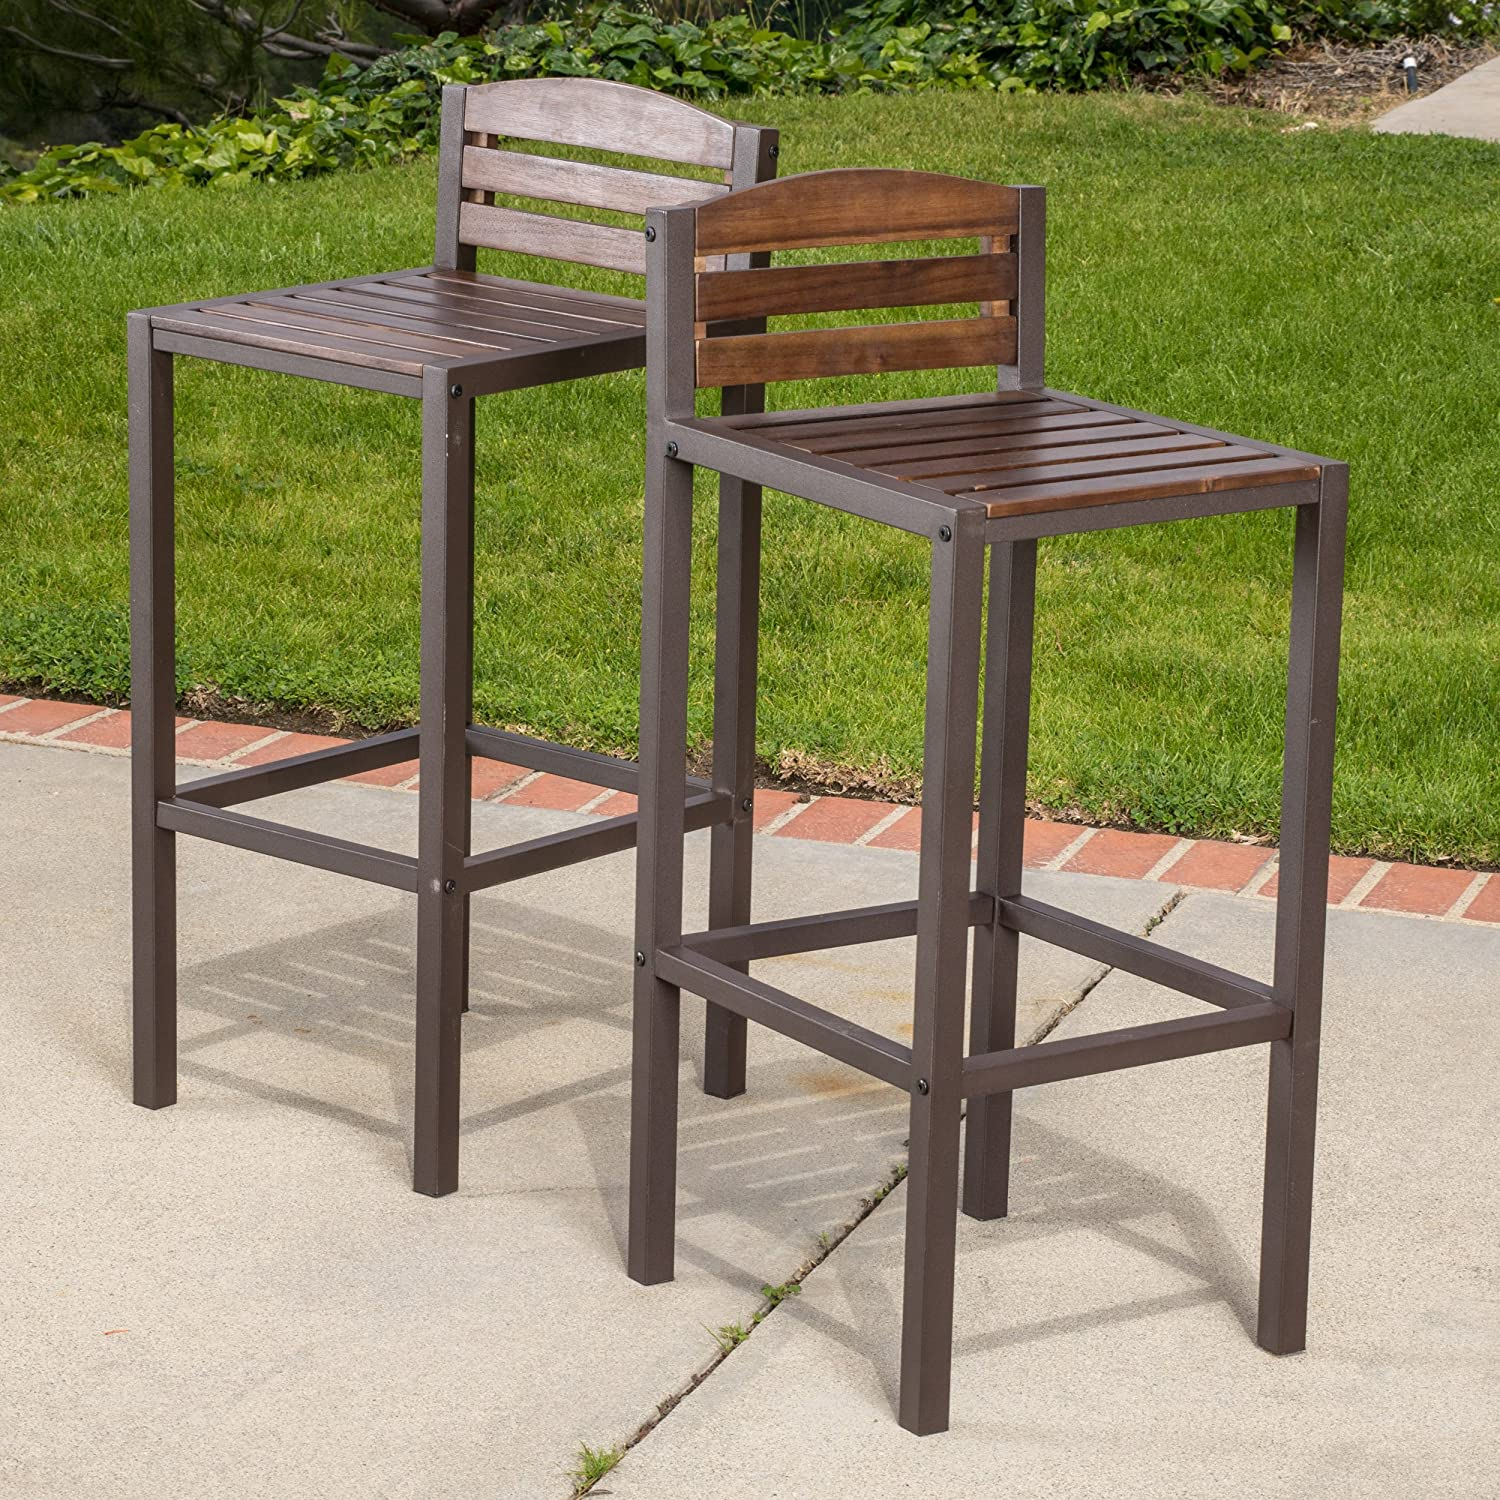 Amazon.com: Bistro Bar, Modern/Rustic Brown Outdoor 3 Piece Milos Set  (296852). Made With Durable Acacia Wood And Framed With Powder Coated Iron.